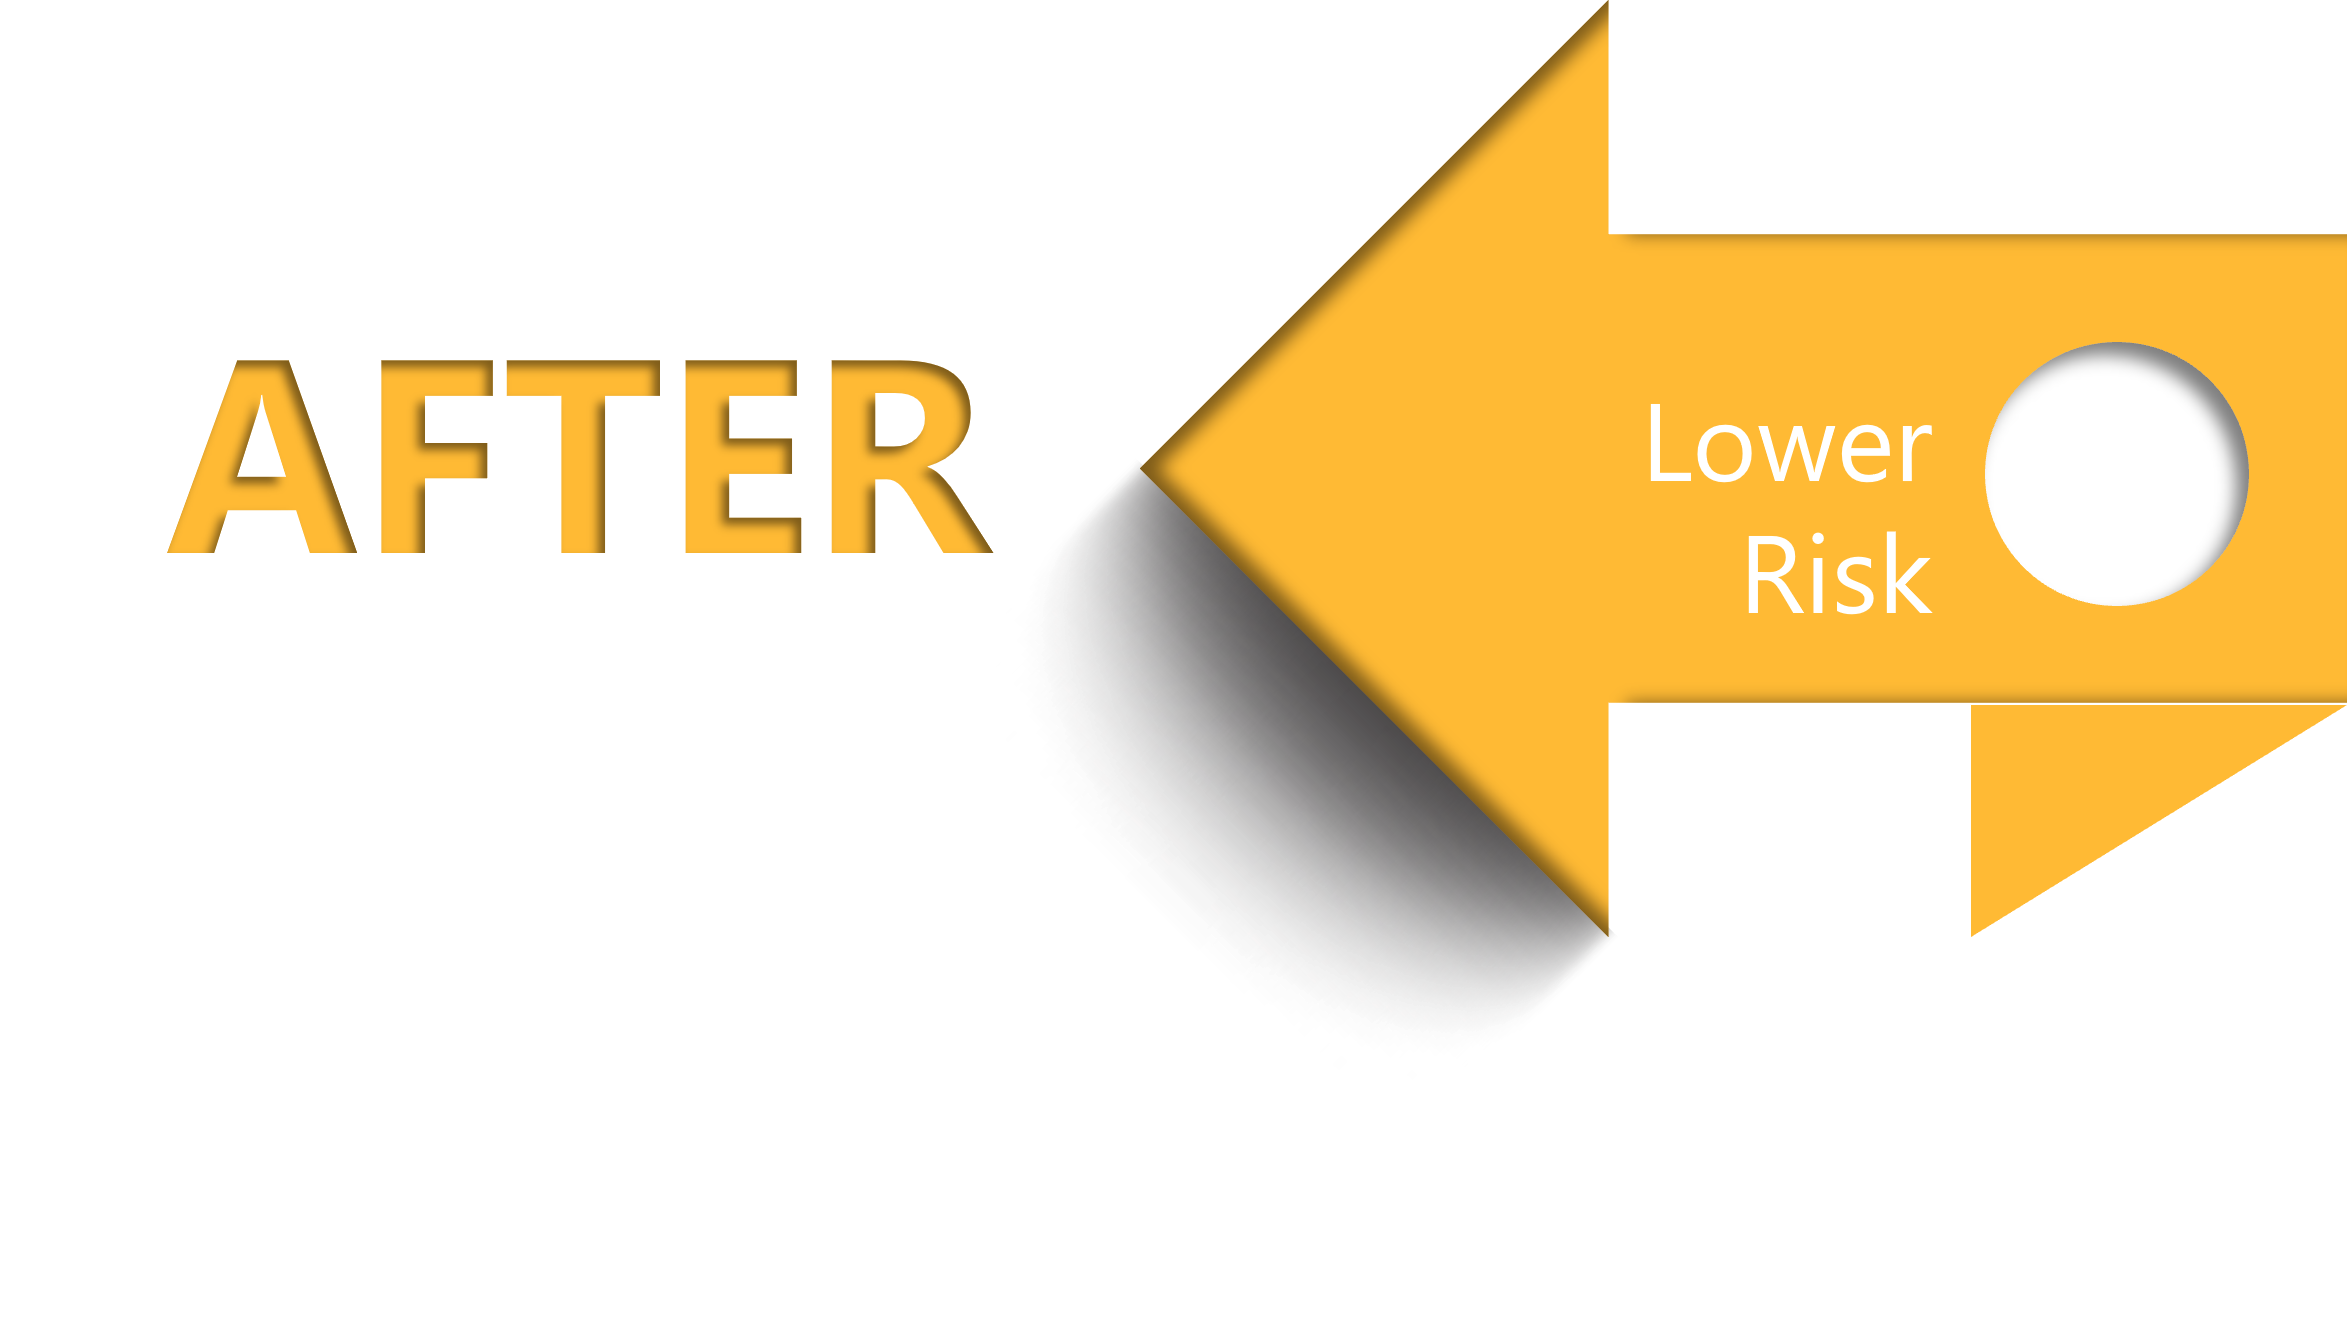 After - Lower Risk